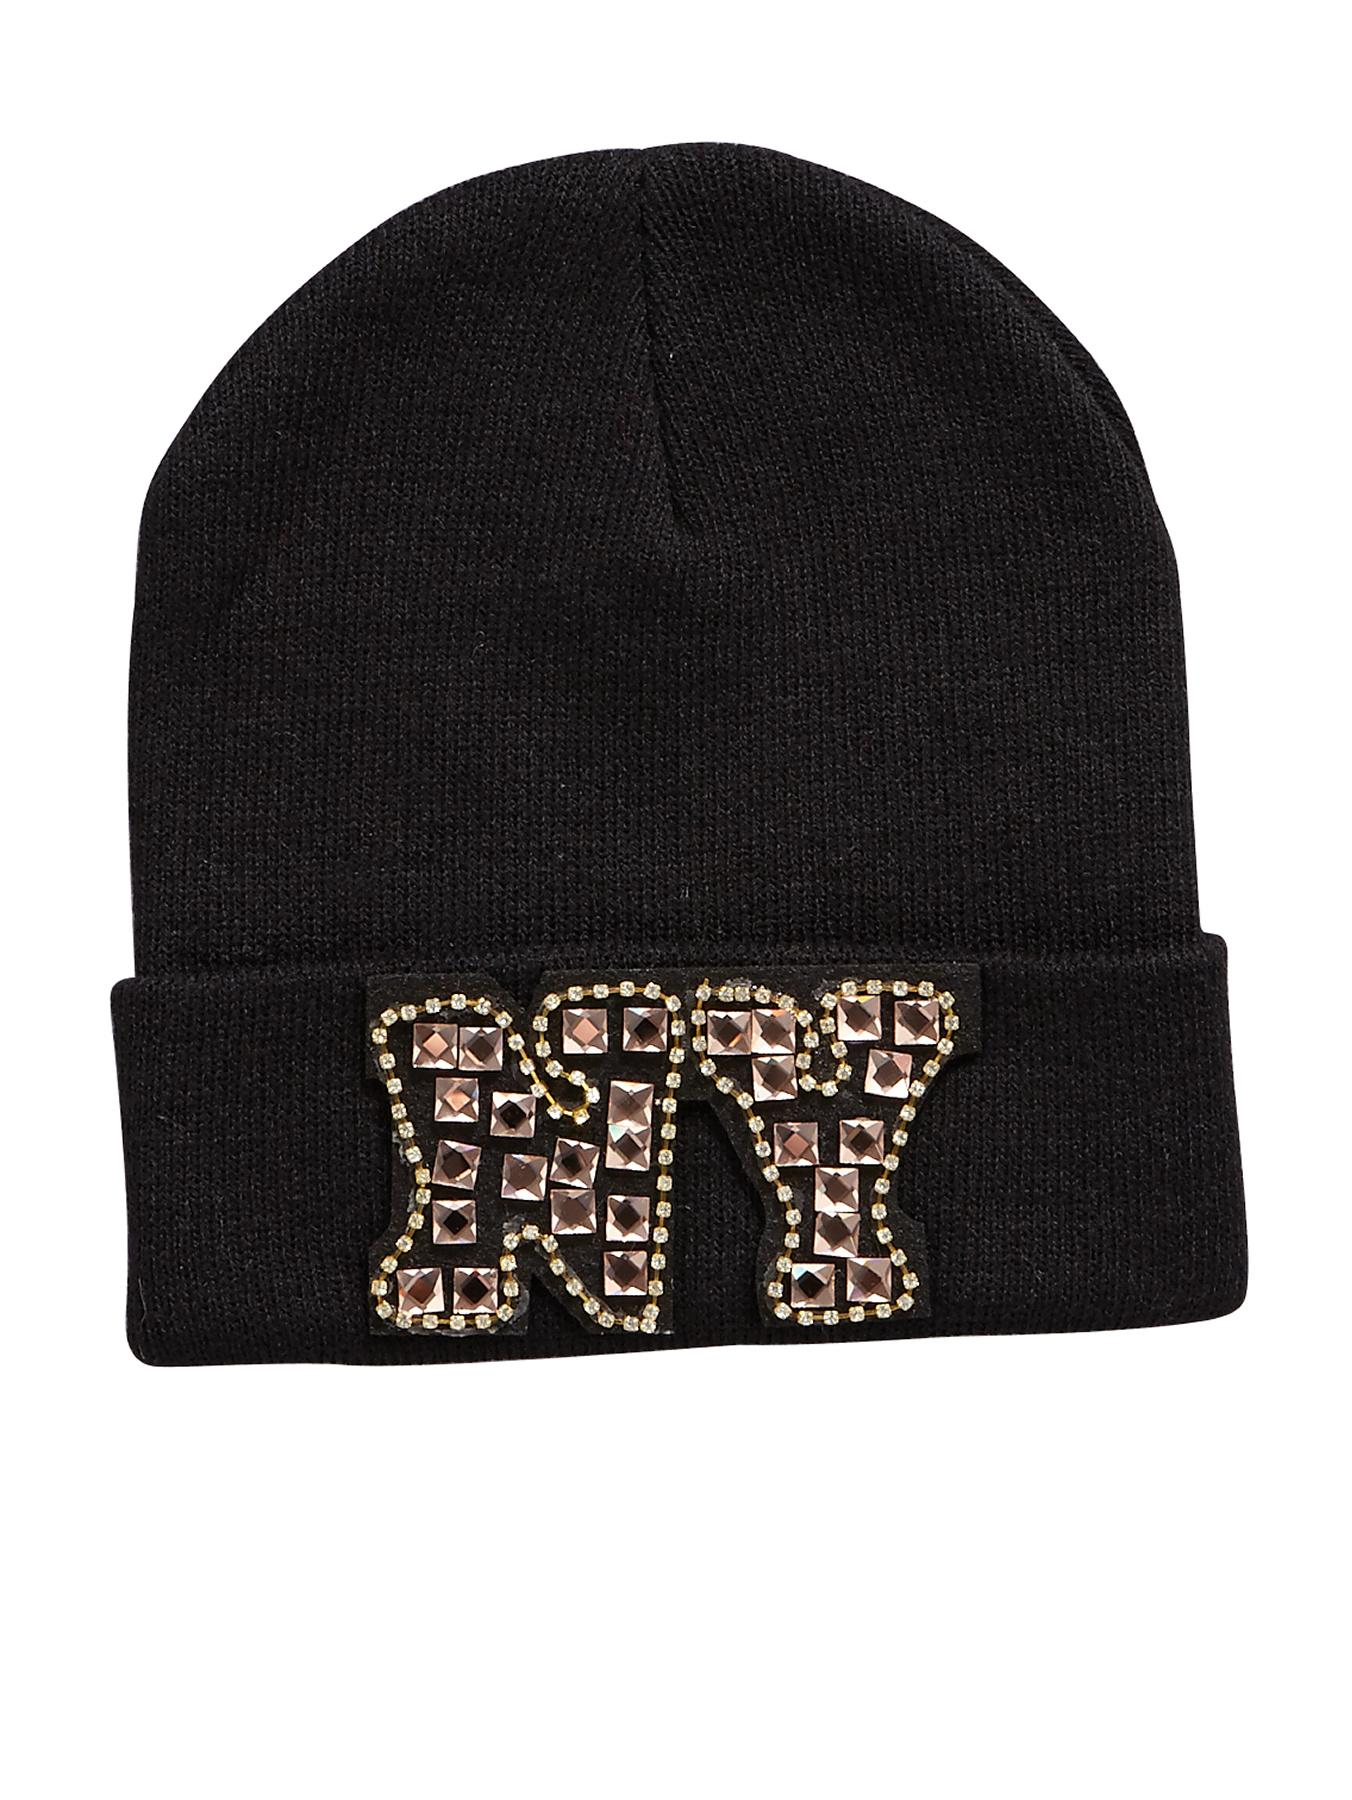 Embellished NY Beanie, Black at Littlewoods